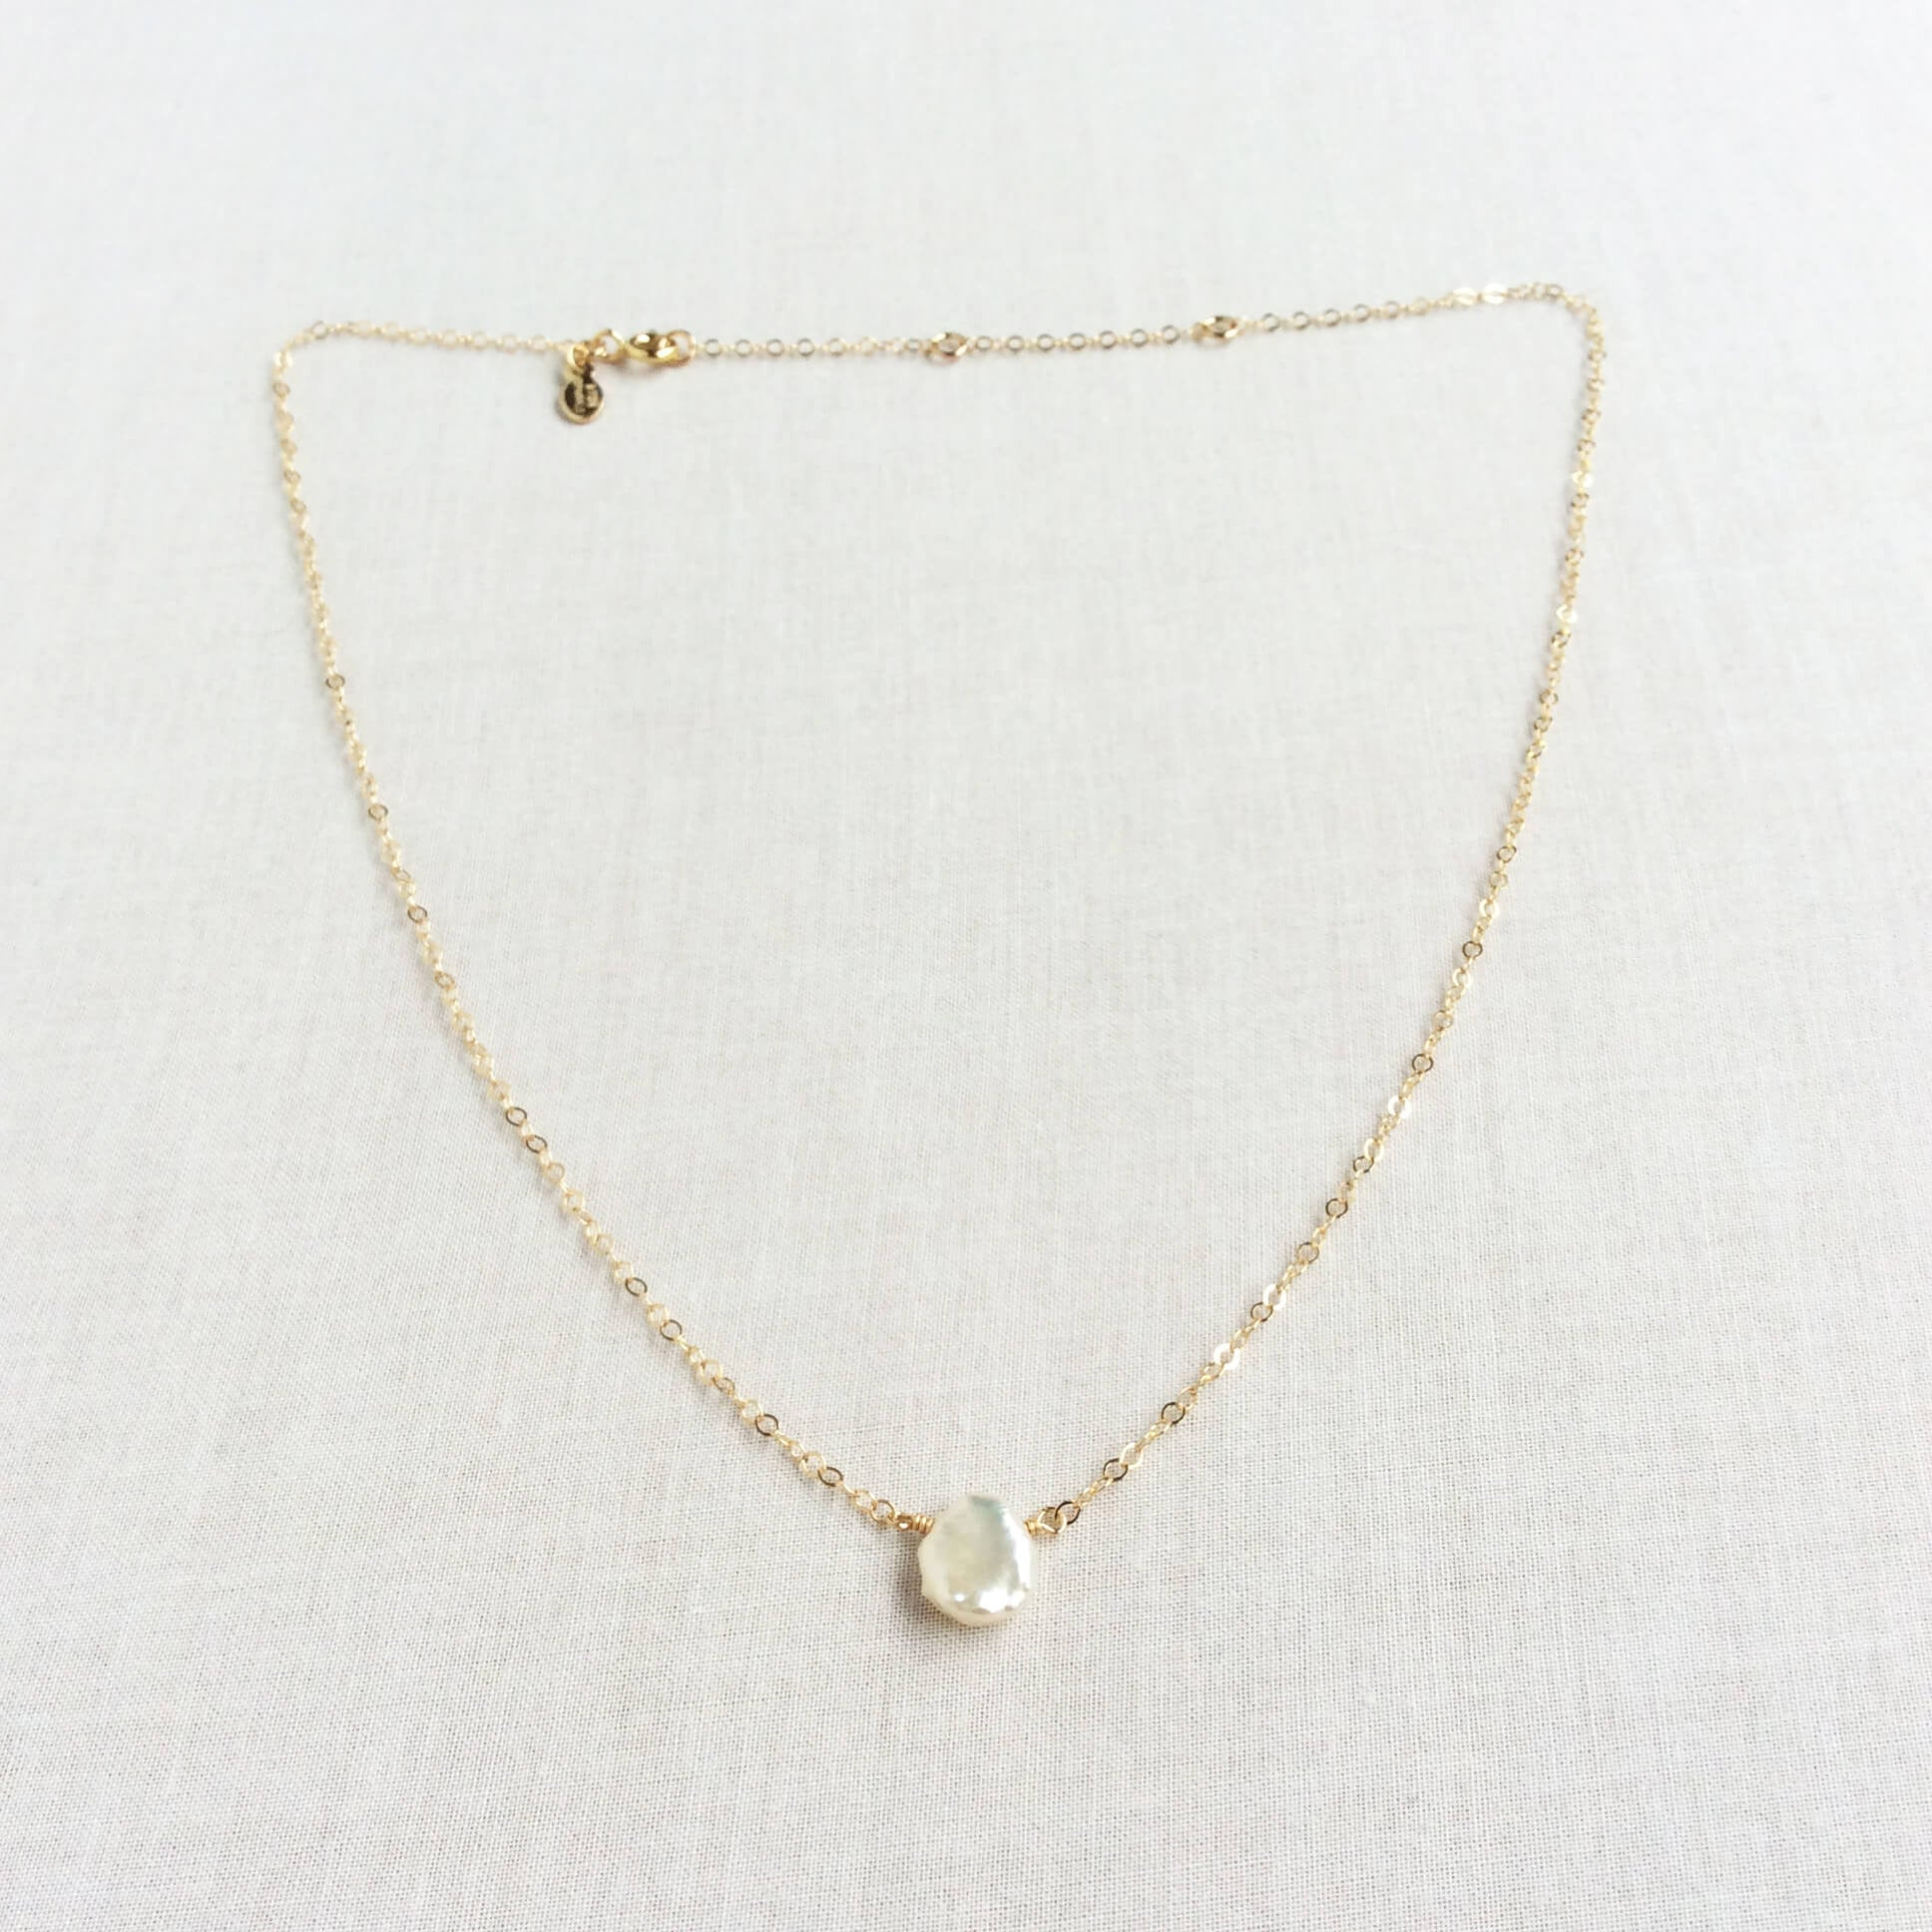 gold filled dainty Keshi Pearl necklace 16 inches to 18 inches